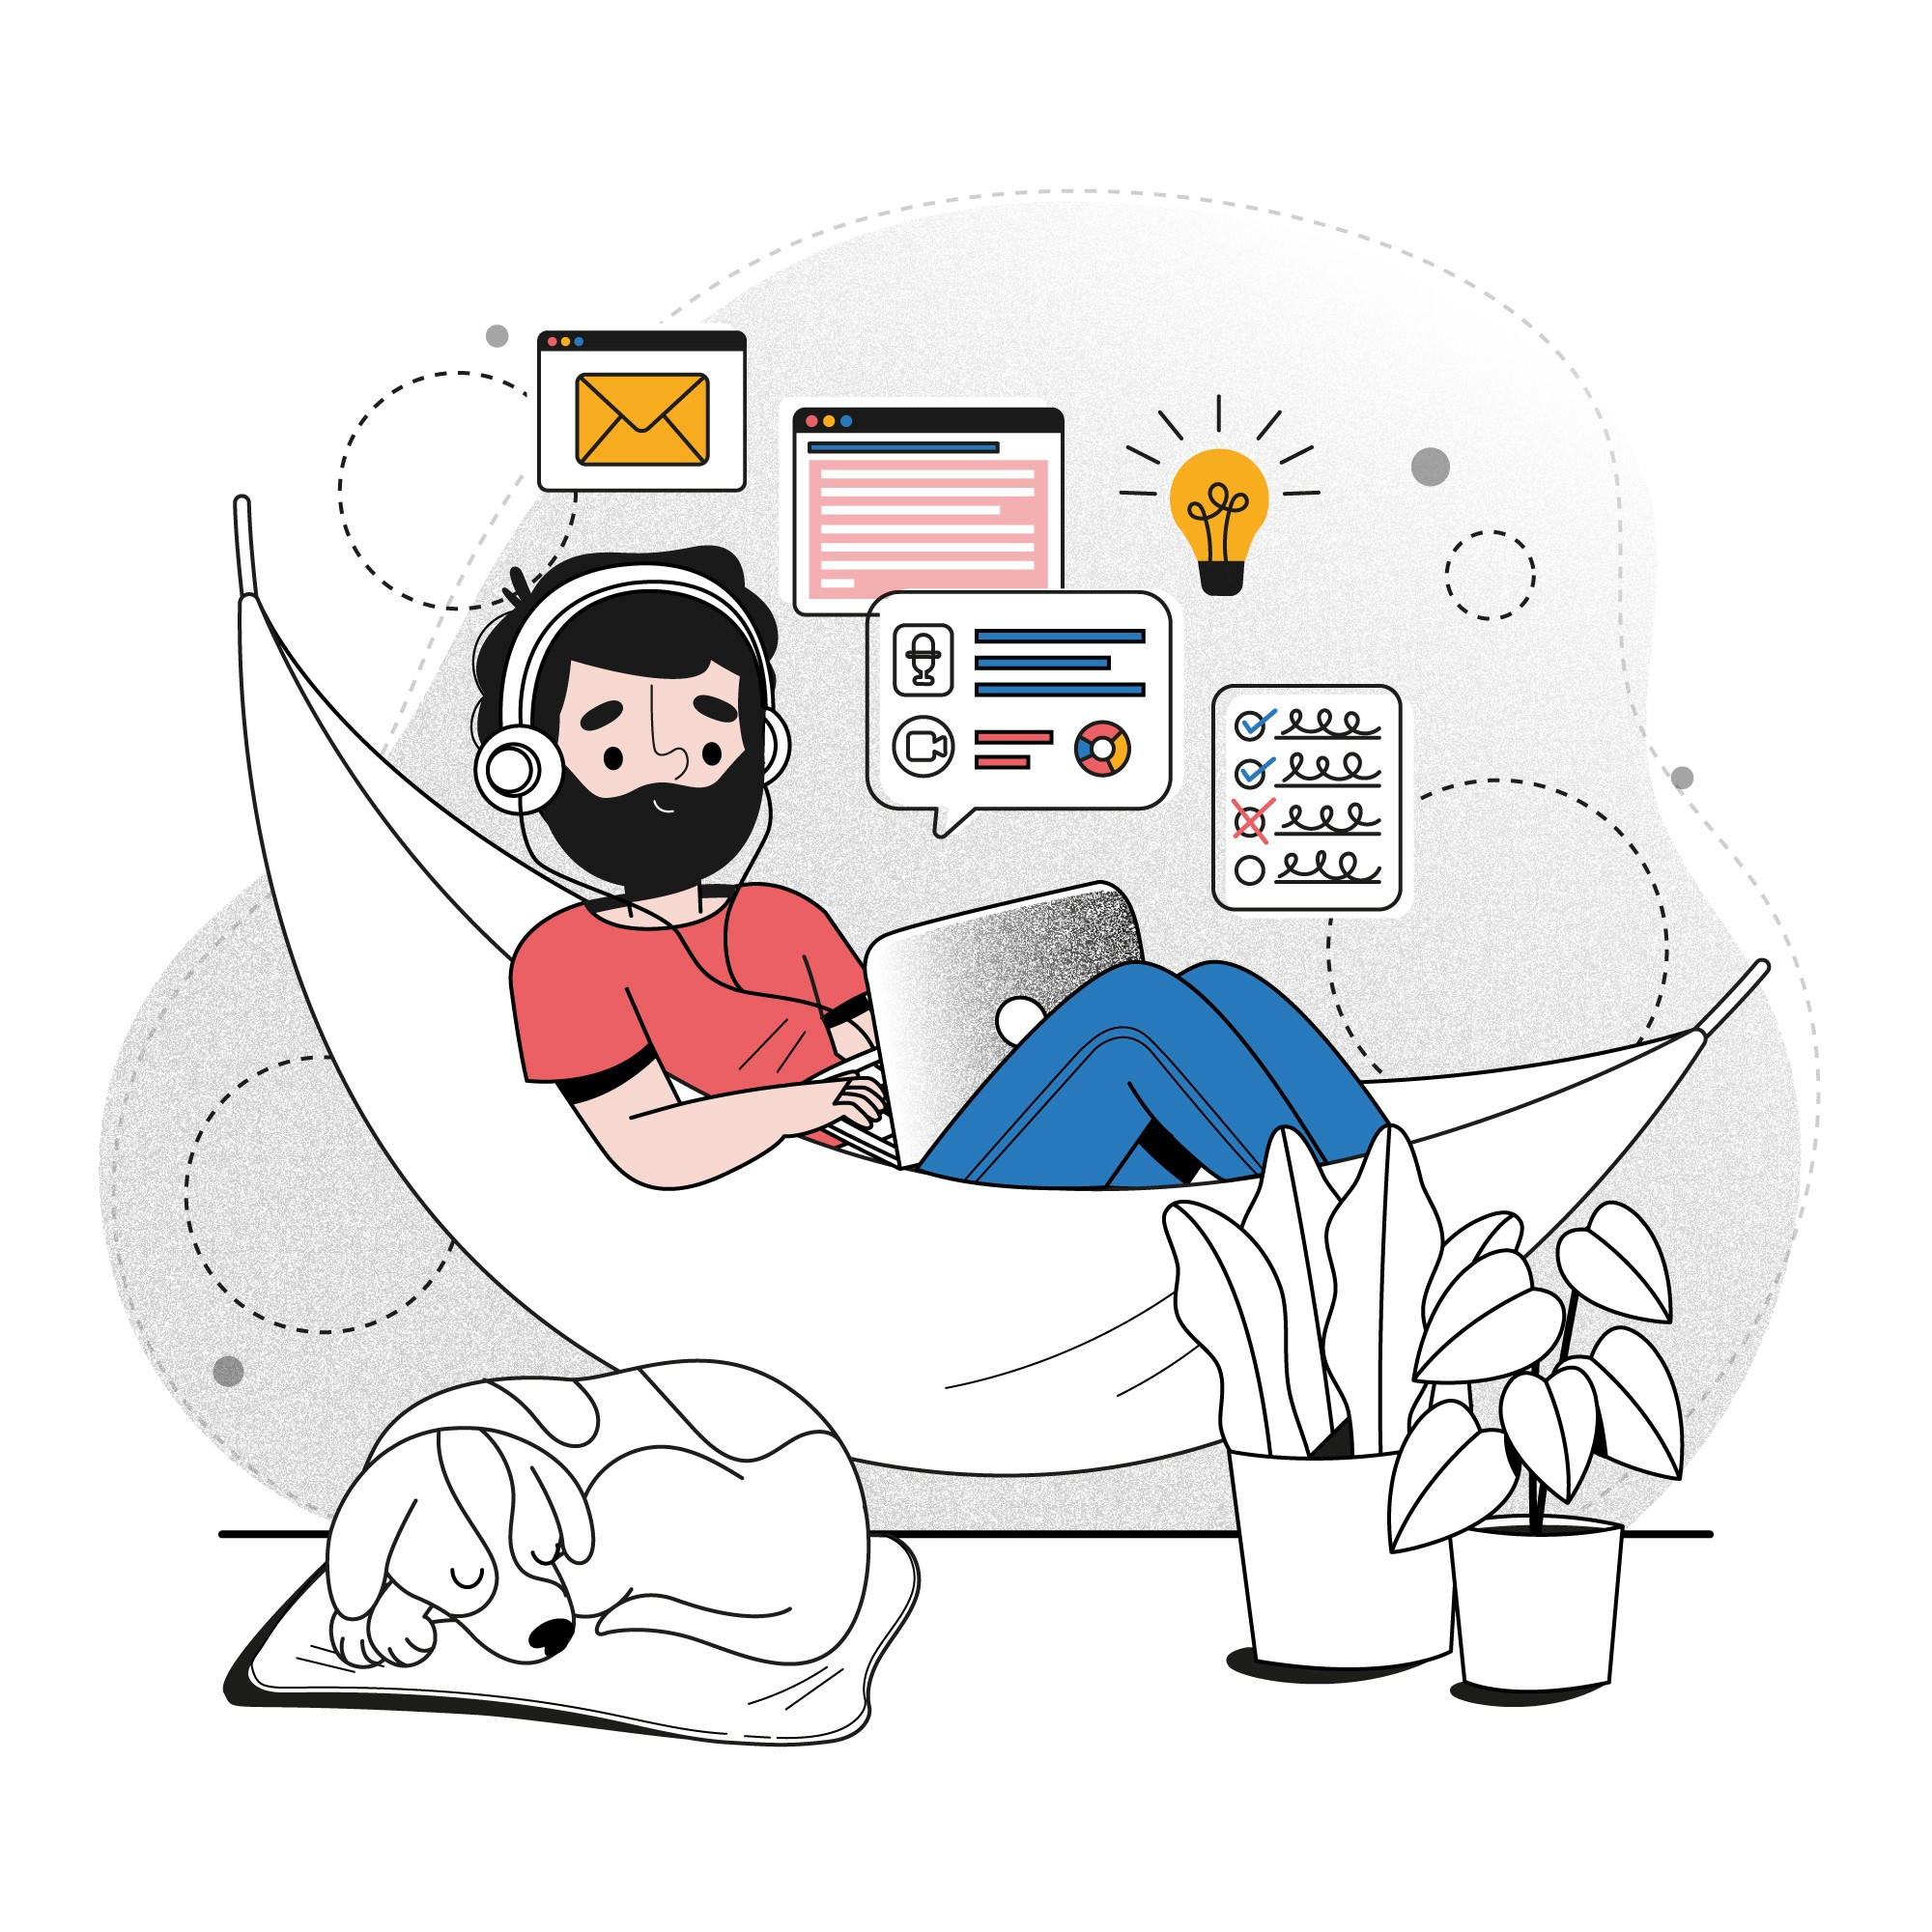 the article is about the remote work from and, cons of working from home and benefits of working from office or co-working space